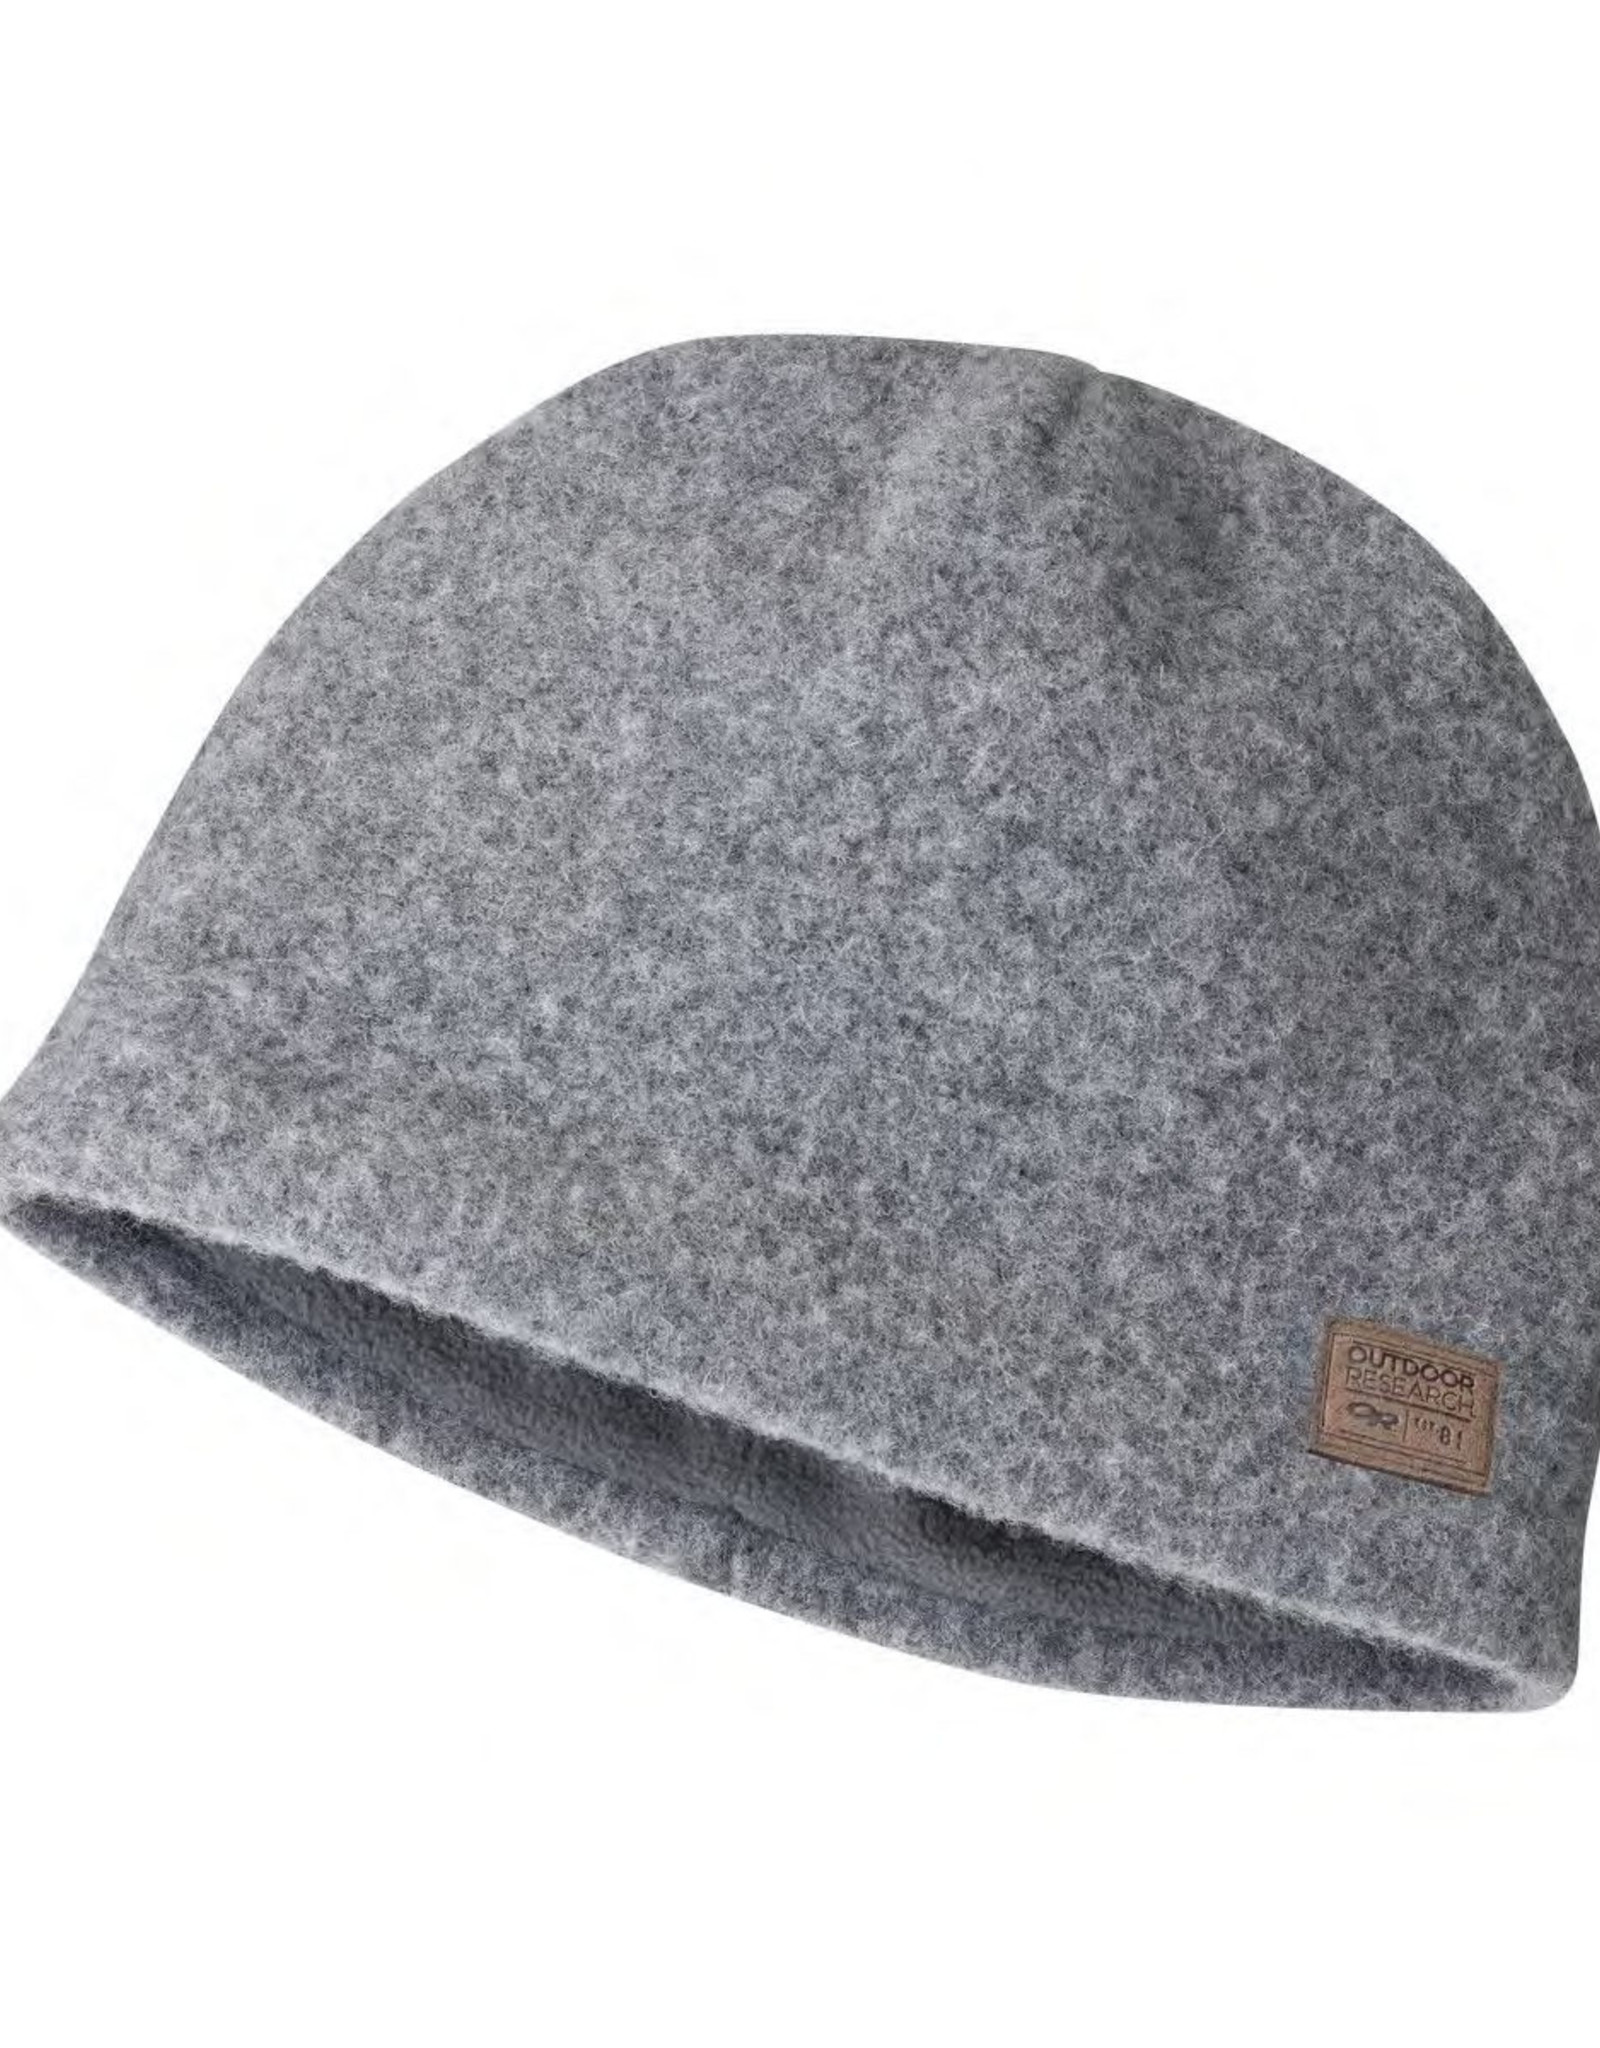 Outdoor Research Outdoor Research Whiskey Peak Beanie